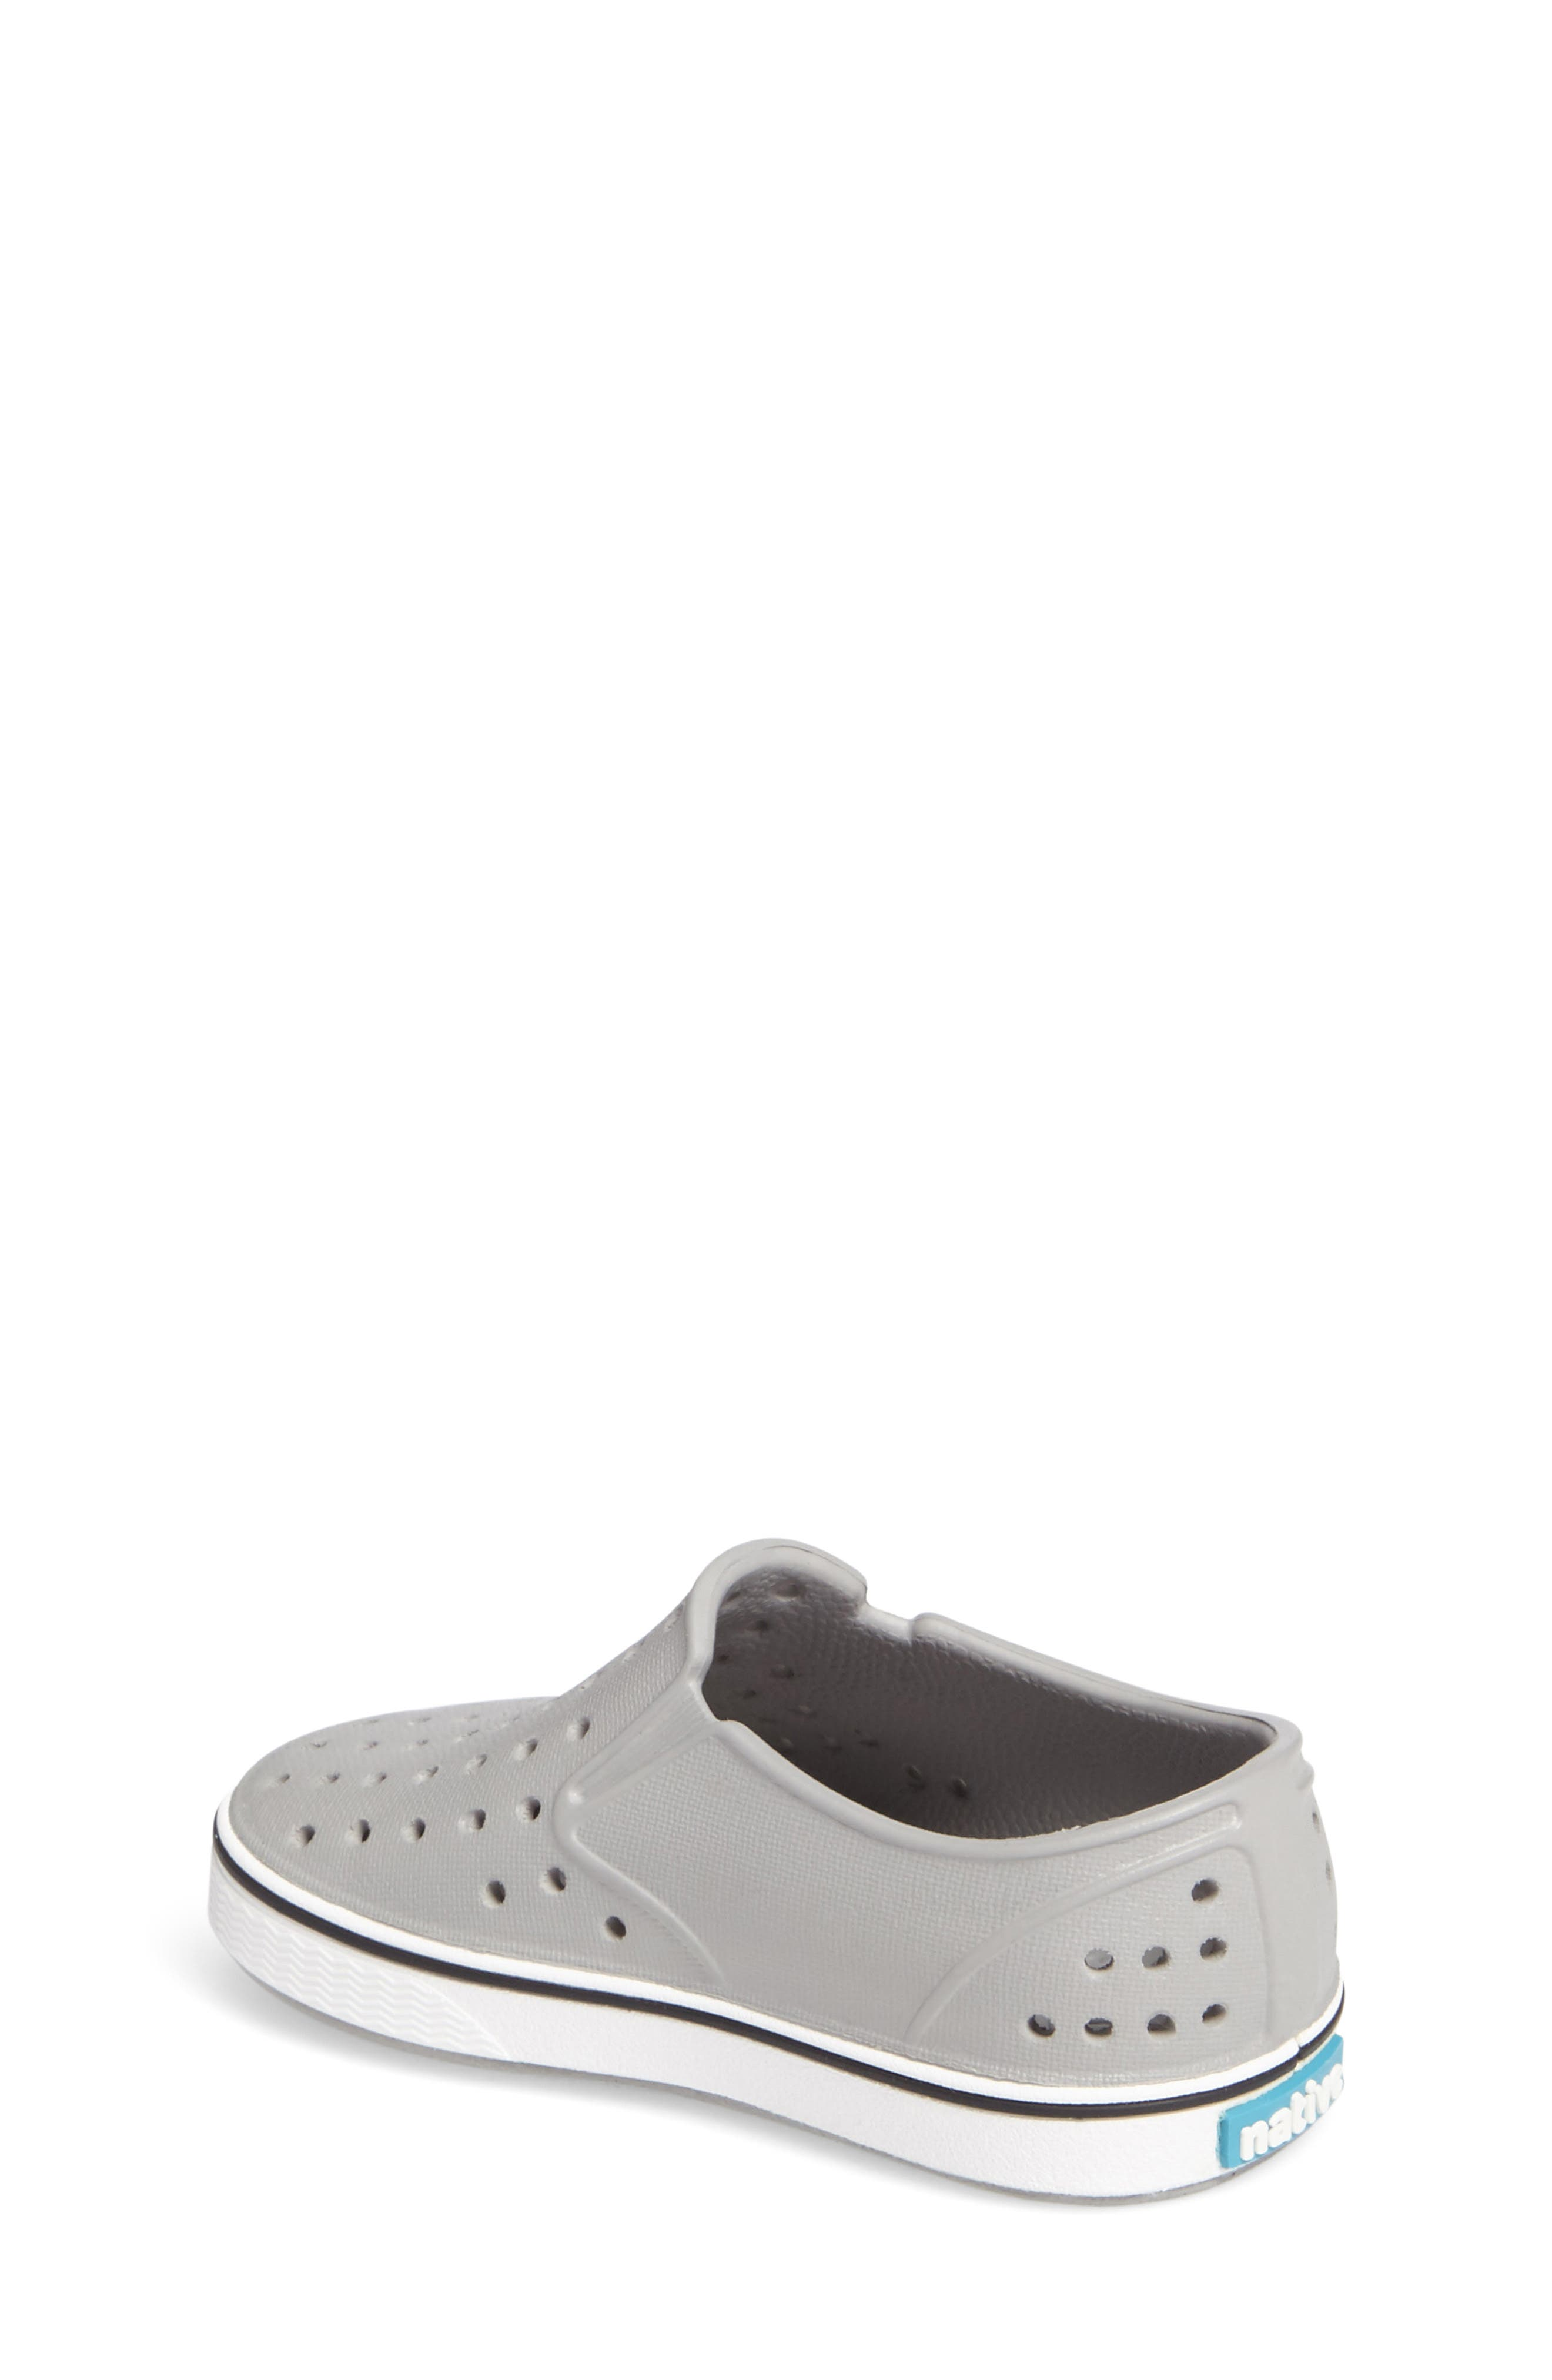 NATIVE SHOES, Miles Water Friendly Slip-On Vegan Sneaker, Alternate thumbnail 2, color, PIGEON GREY/ SHELL WHITE